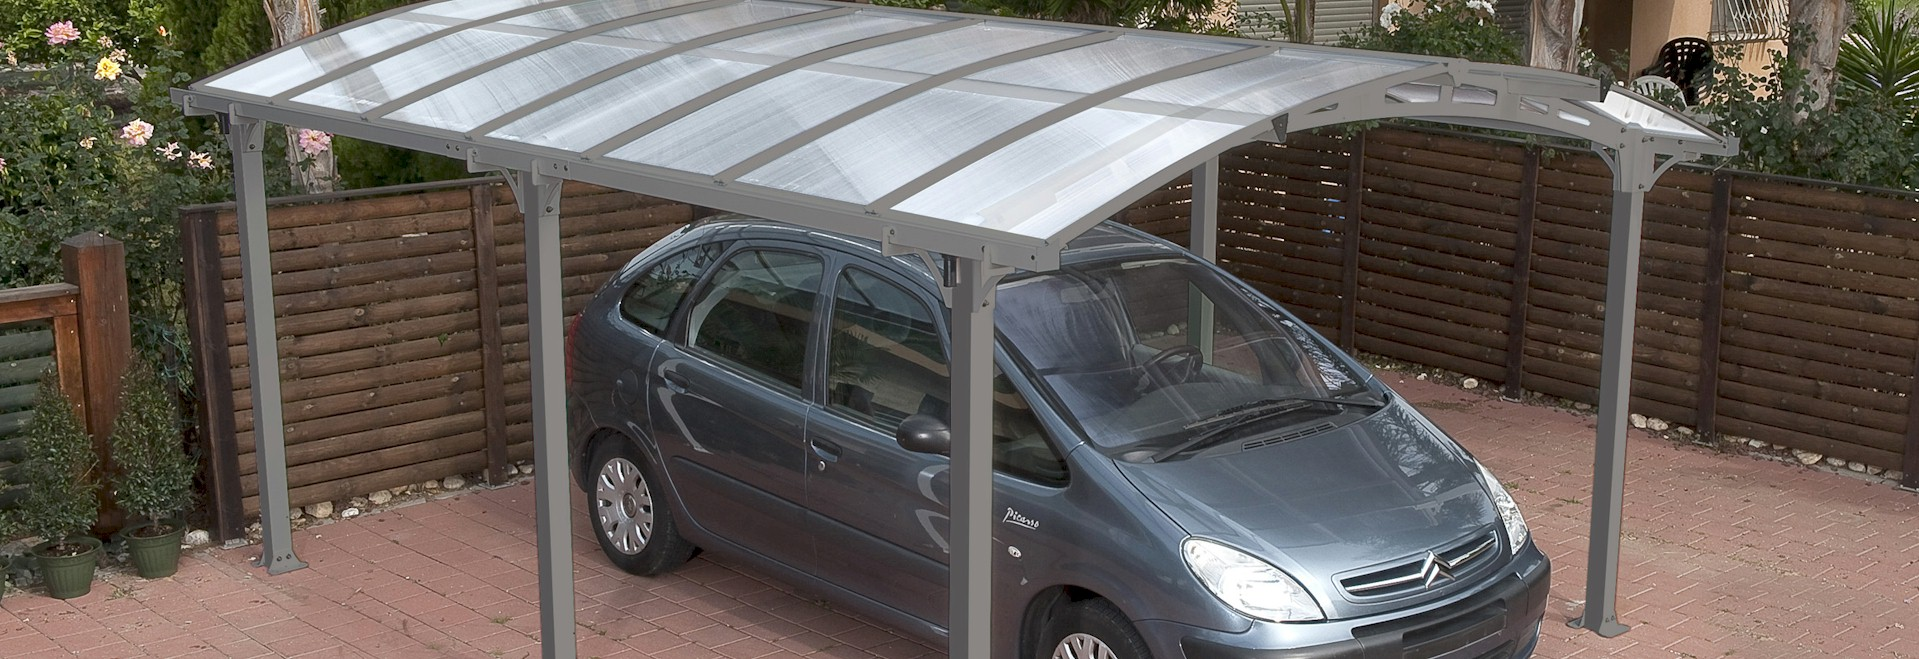 Suppliers Of Carports Amp Garden Canopies Order Online At